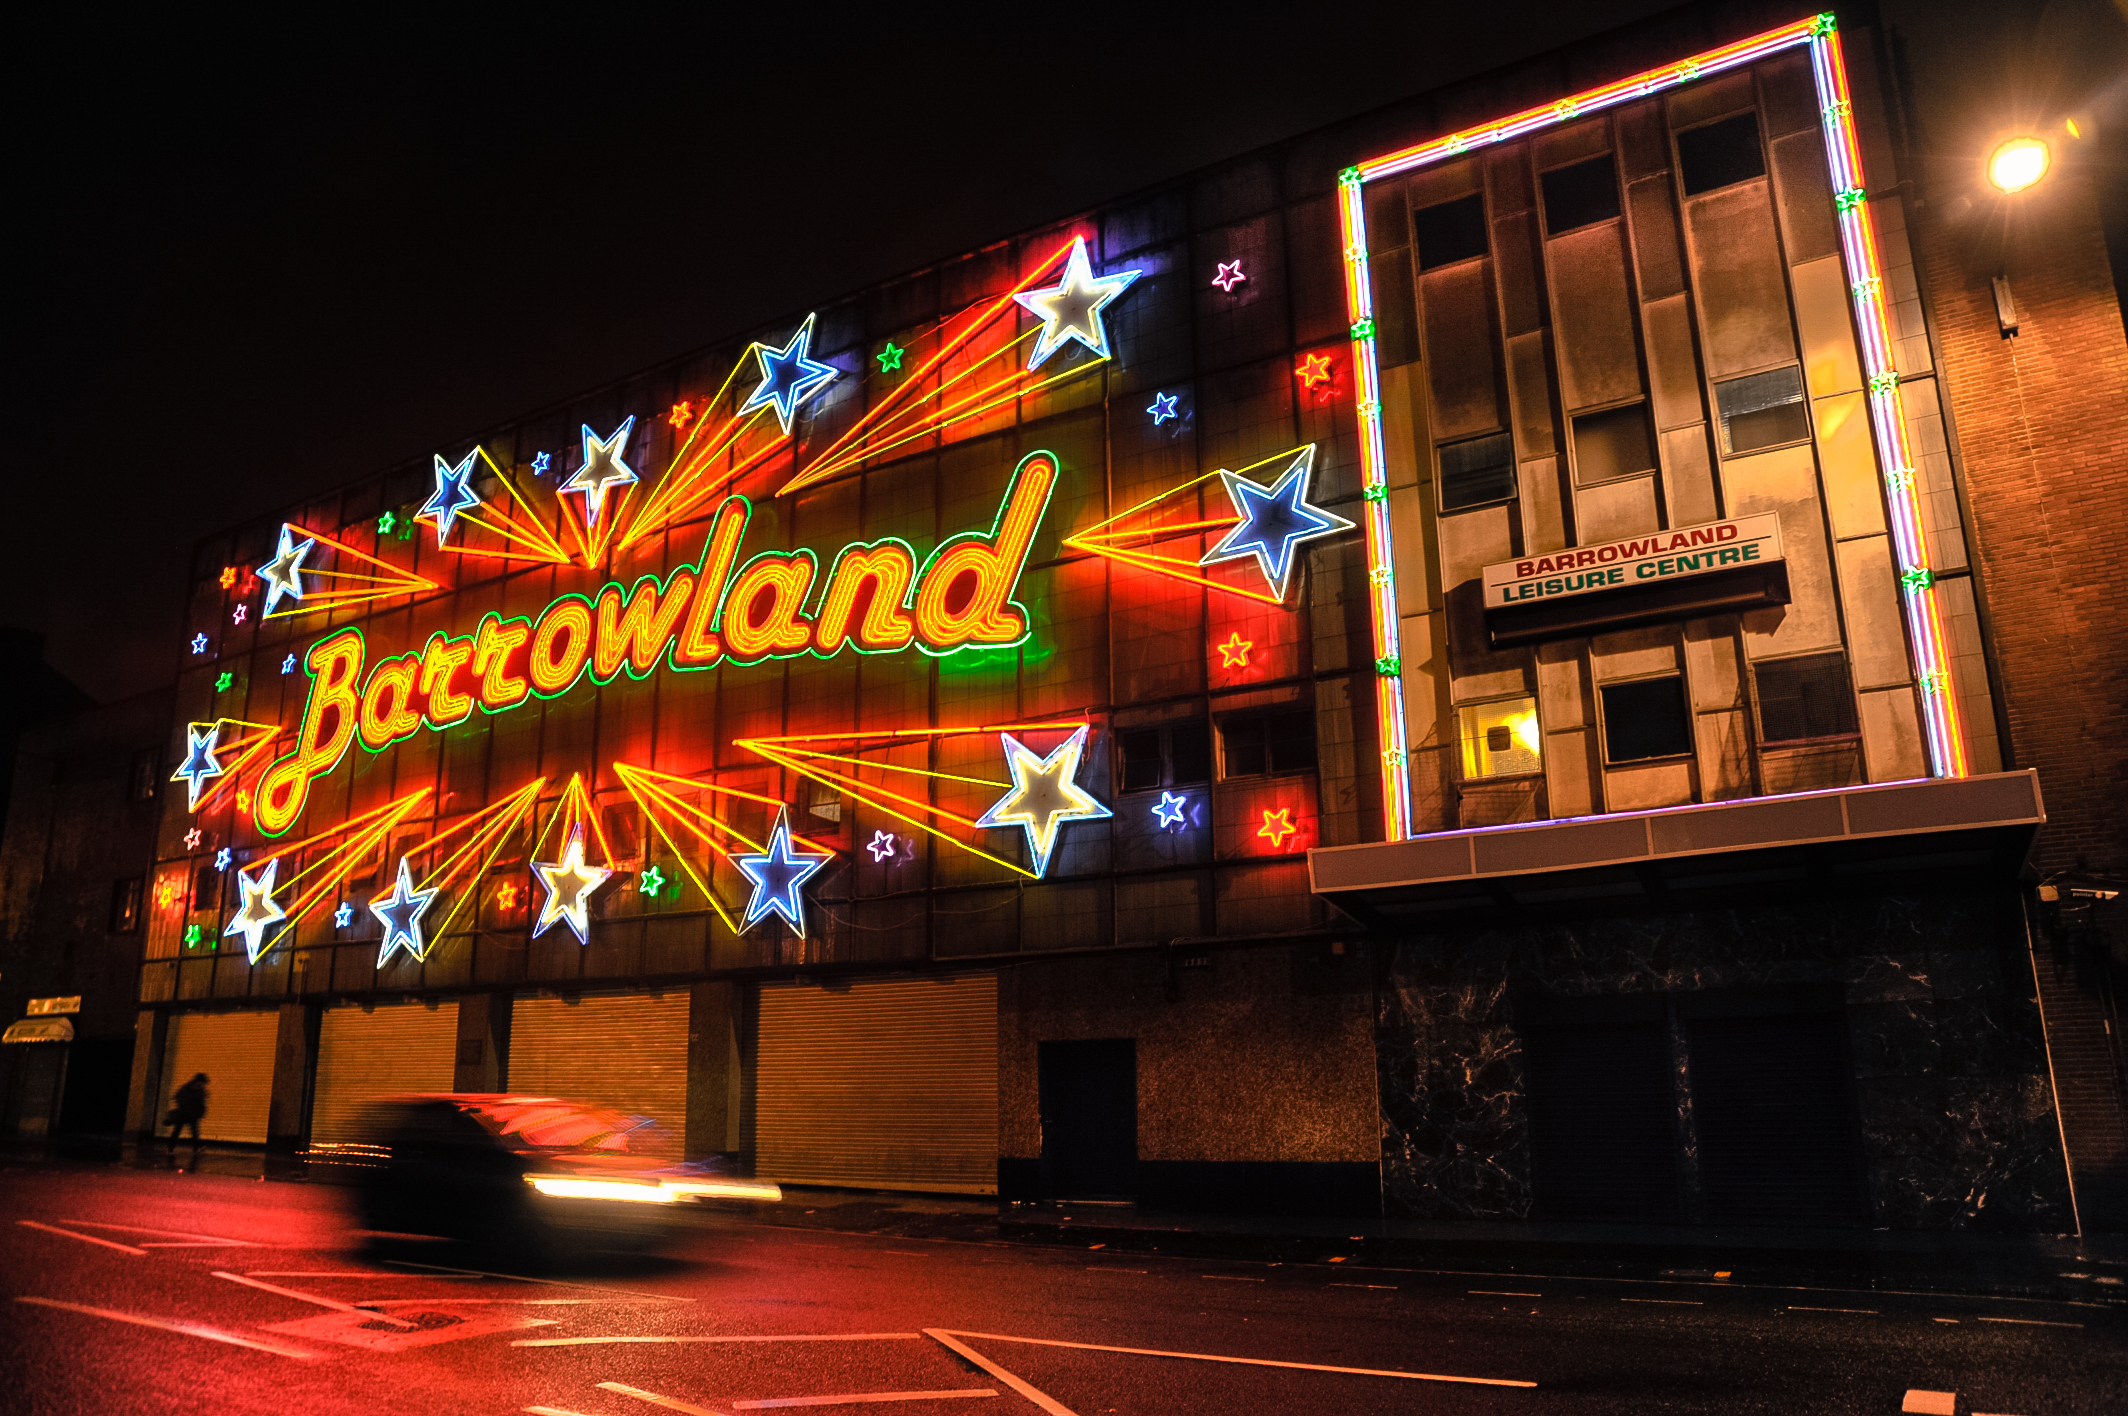 The Barrowland Ballroom, Music venues, Glasgow